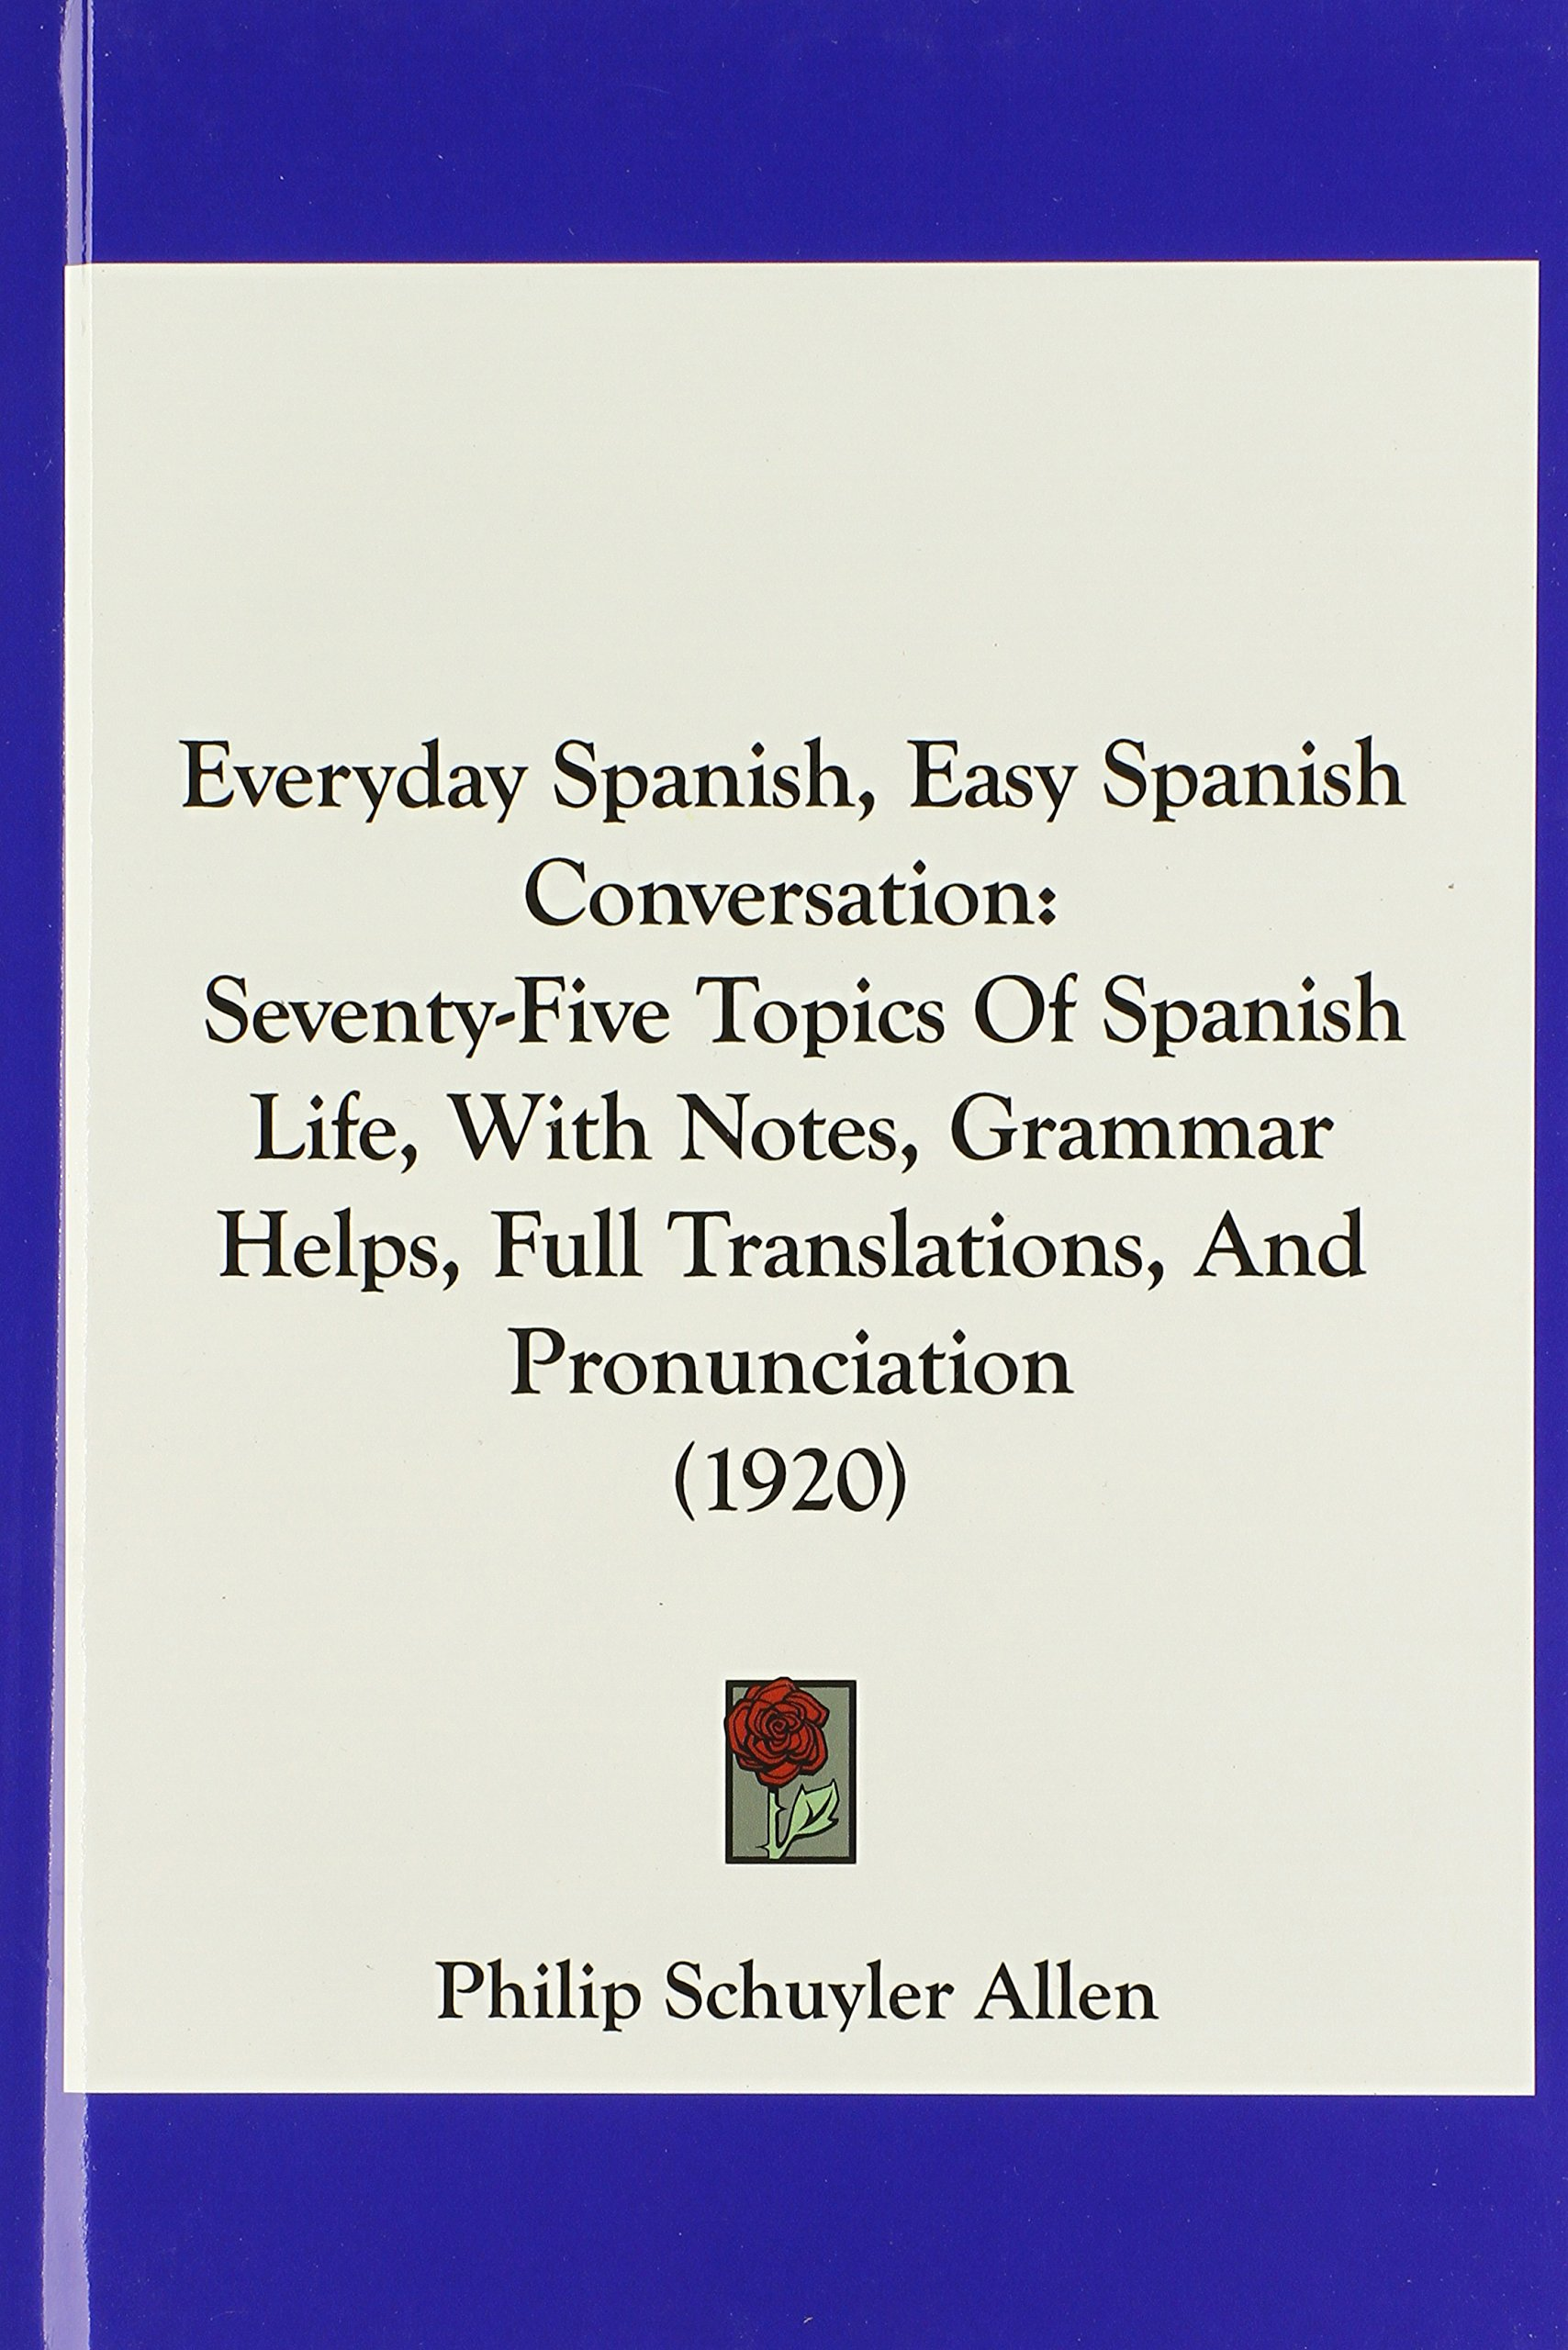 Download Everyday Spanish, Easy Spanish Conversation: Seventy-Five Topics Of Spanish Life, With Notes, Grammar Helps, Full Translations, And Pronunciation (1920) ebook